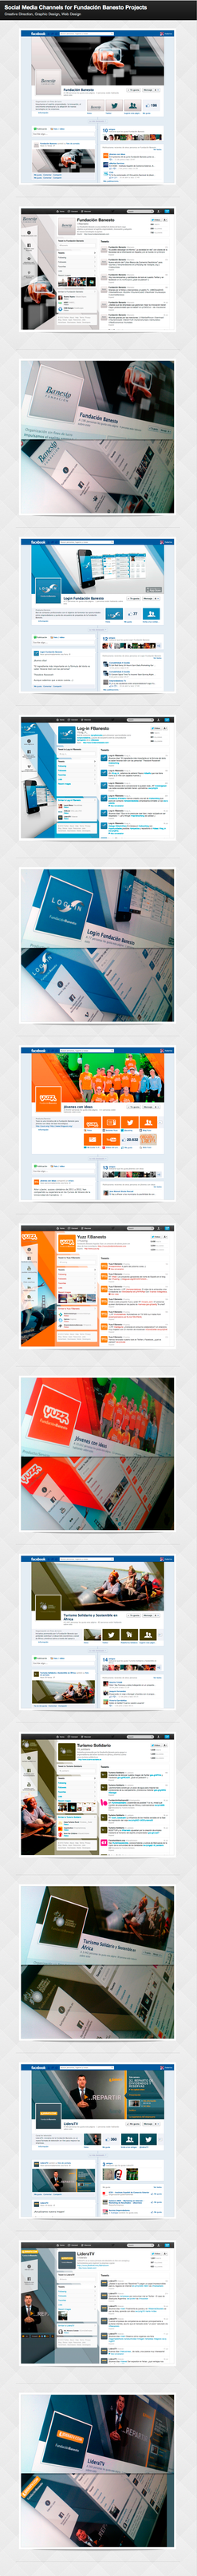 Social Media Channels for Banesto Fundation by badendesing